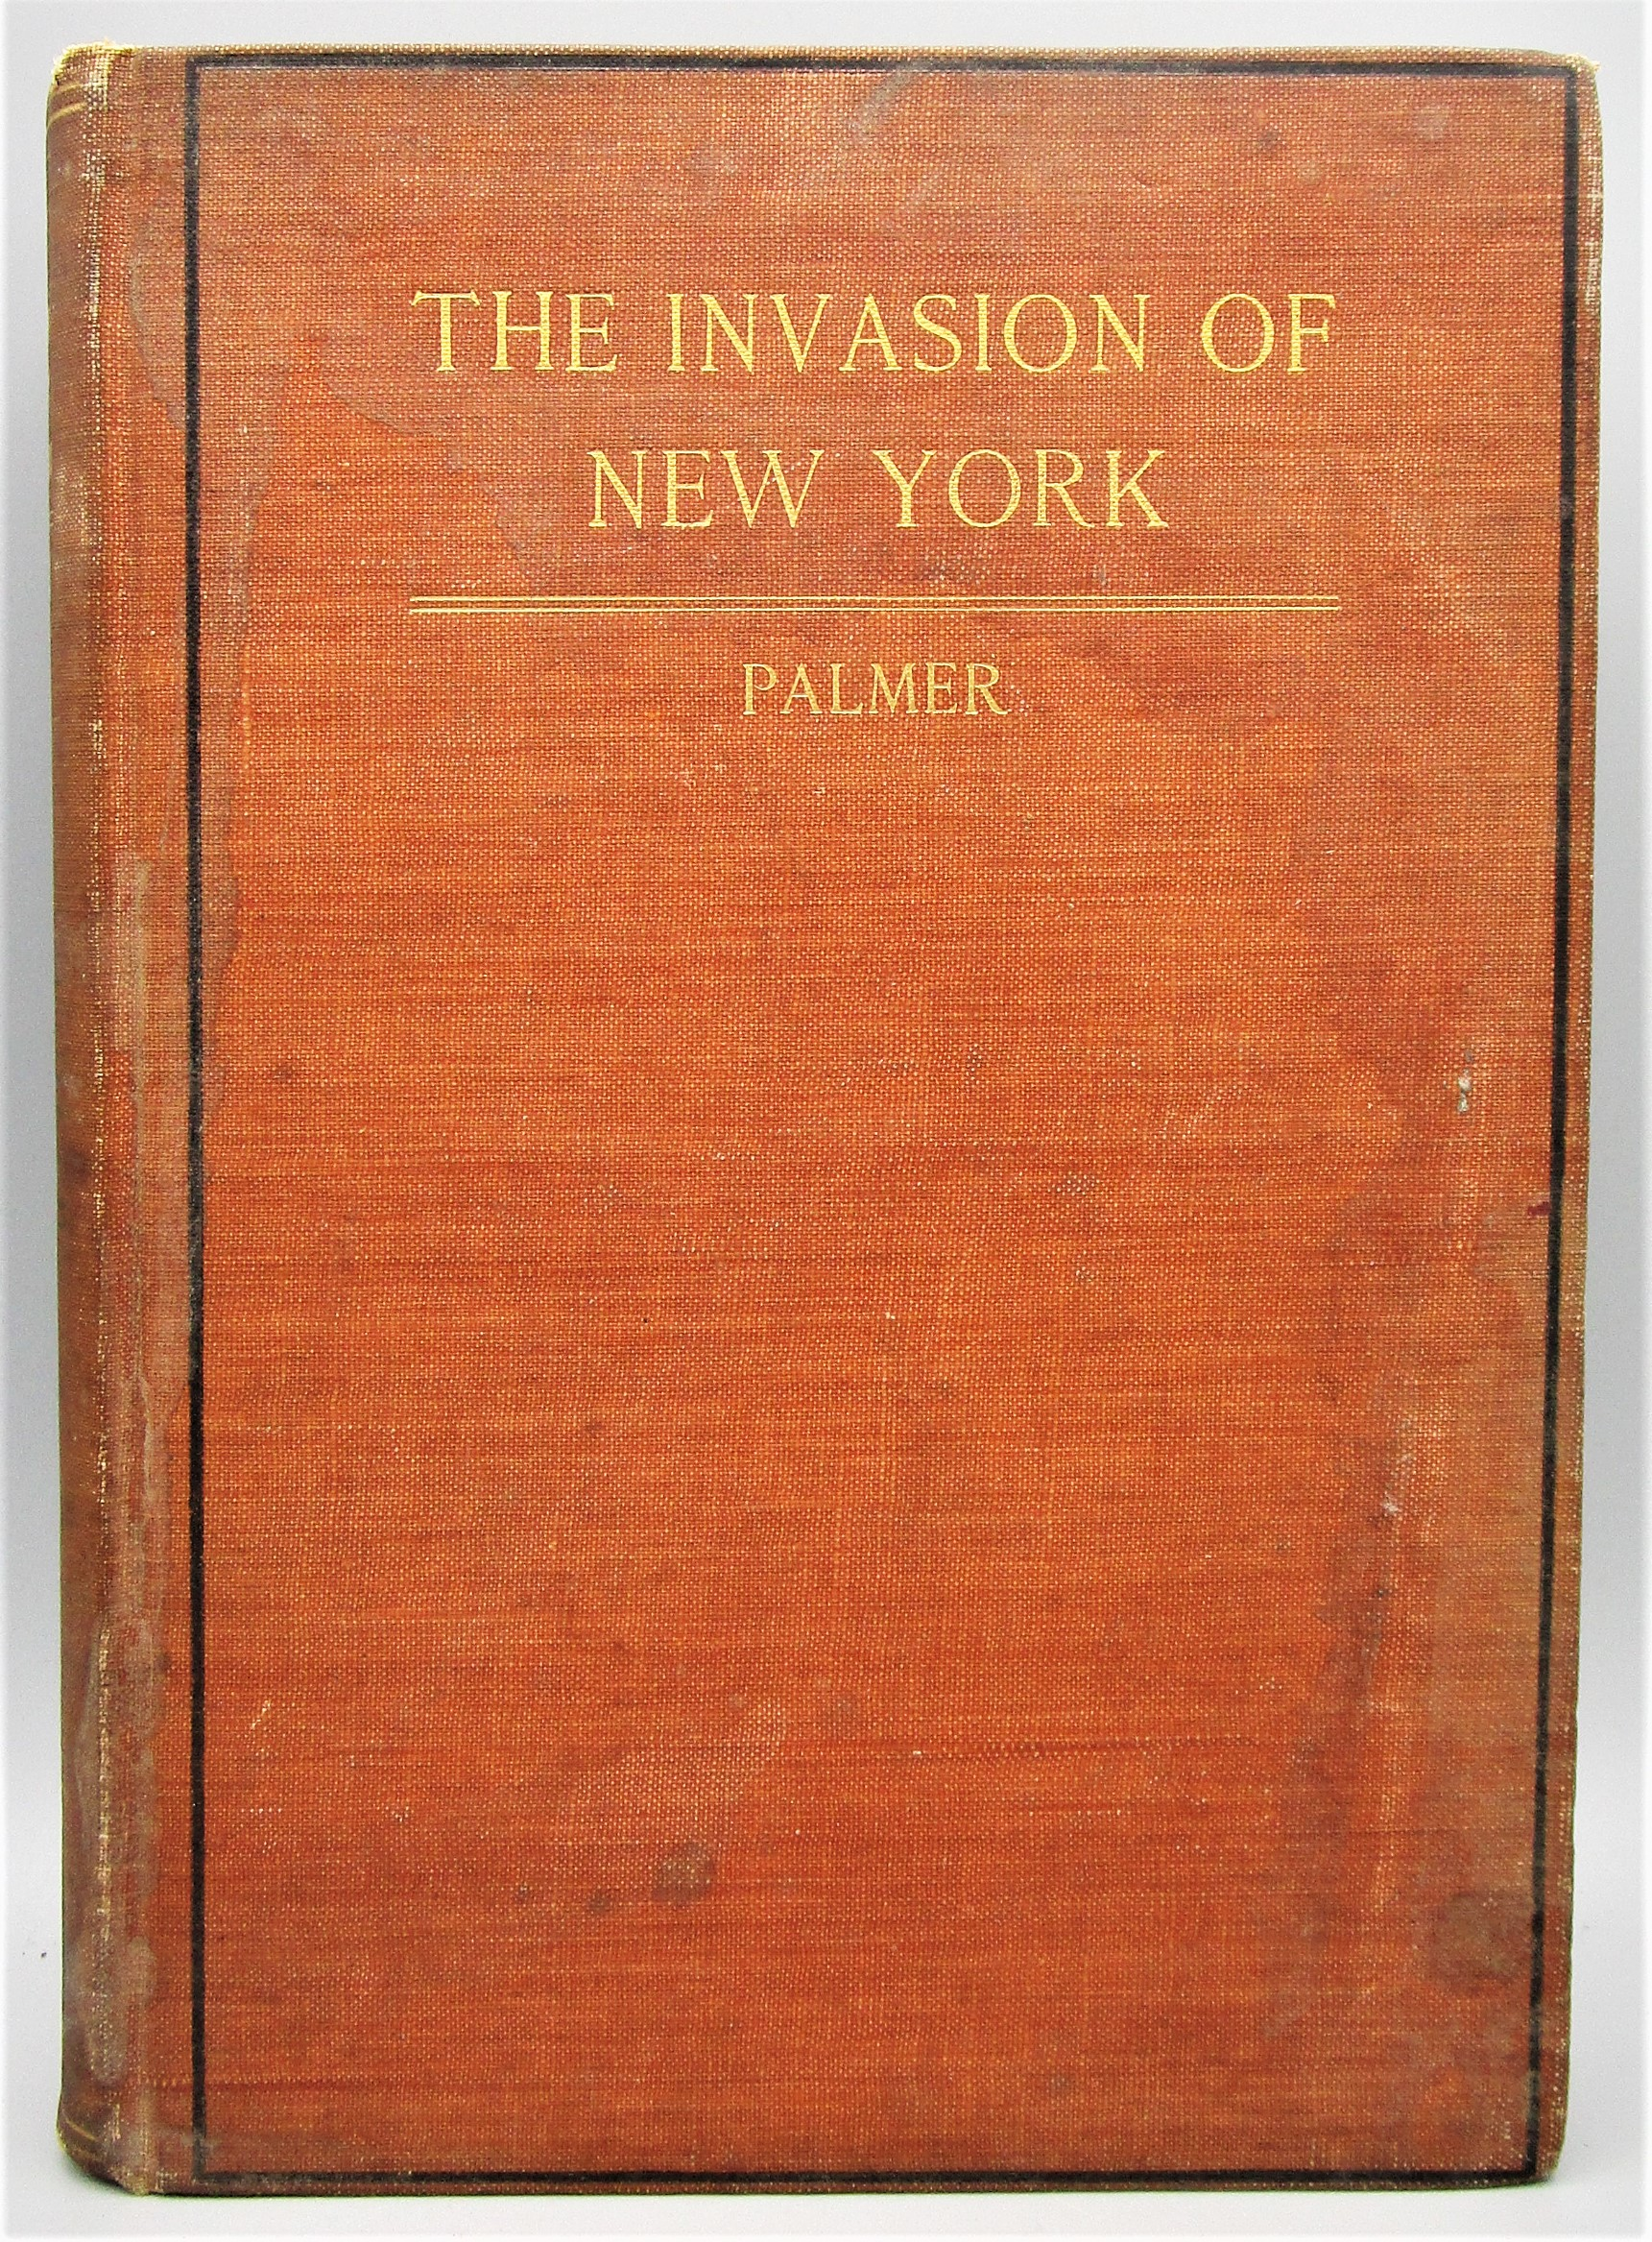 THE INVASION OF NEW YORK, by John H. Palmer - 1897 [1st Ed]